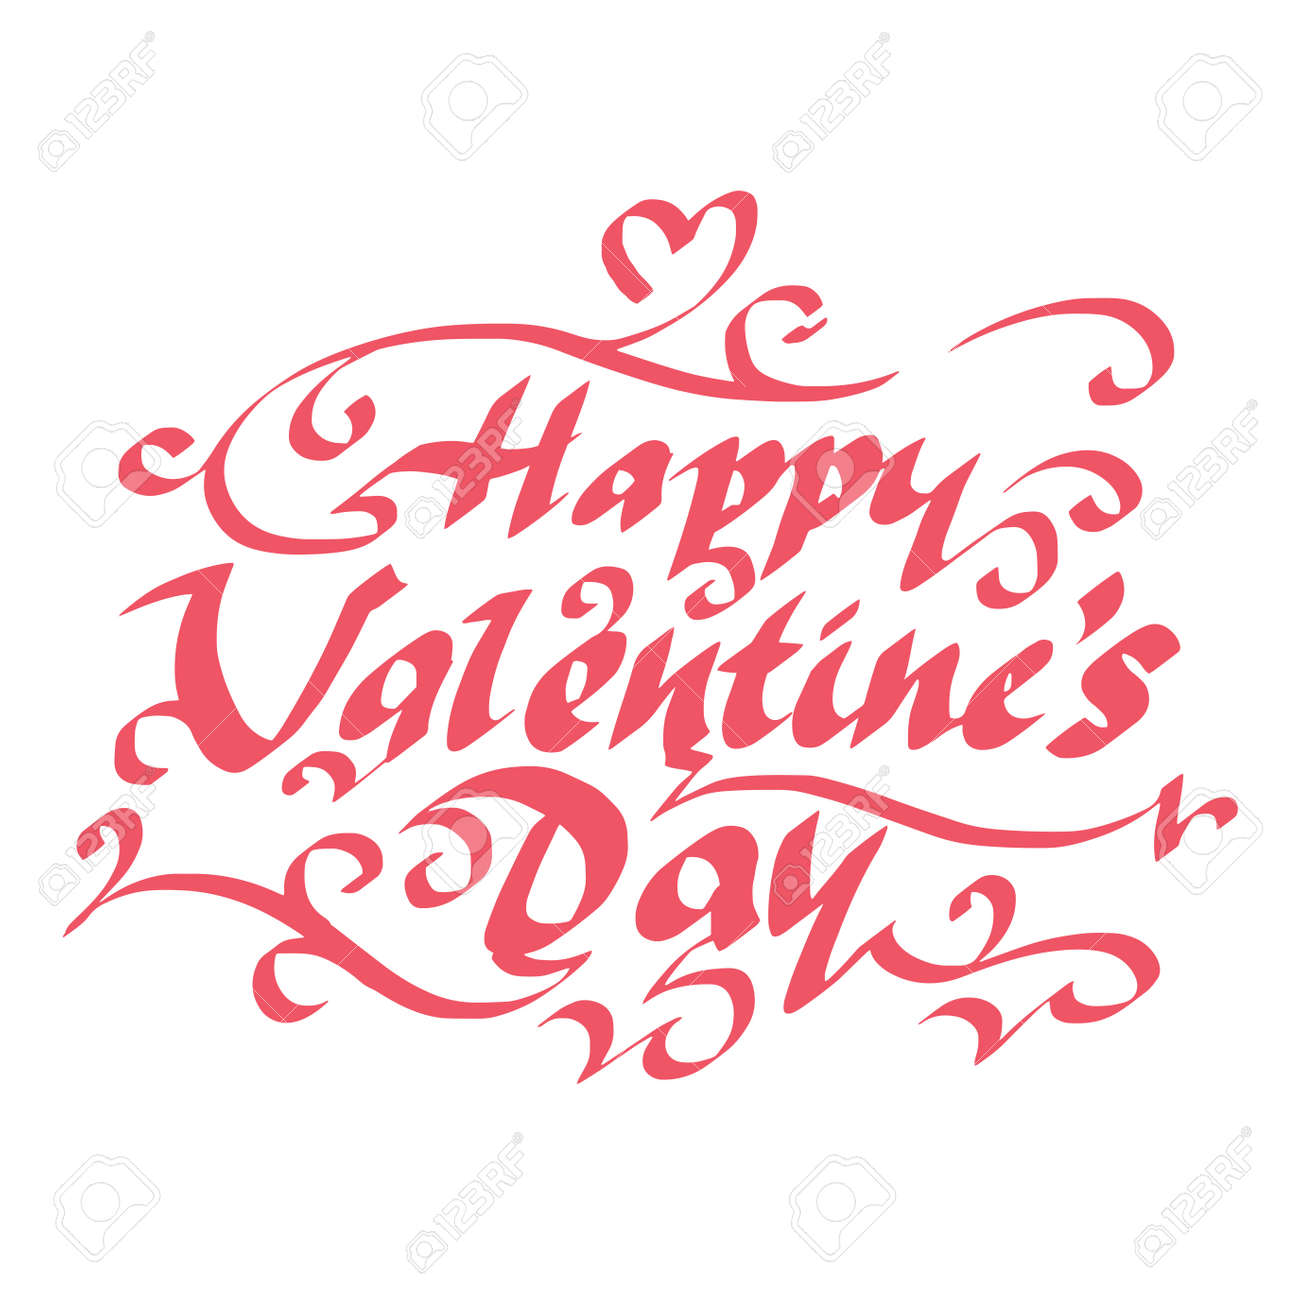 Happy valentines day greeting cards vector illustration valentine happy valentines day greeting cards vector illustration valentine greeting card design valentine day layout kristyandbryce Images